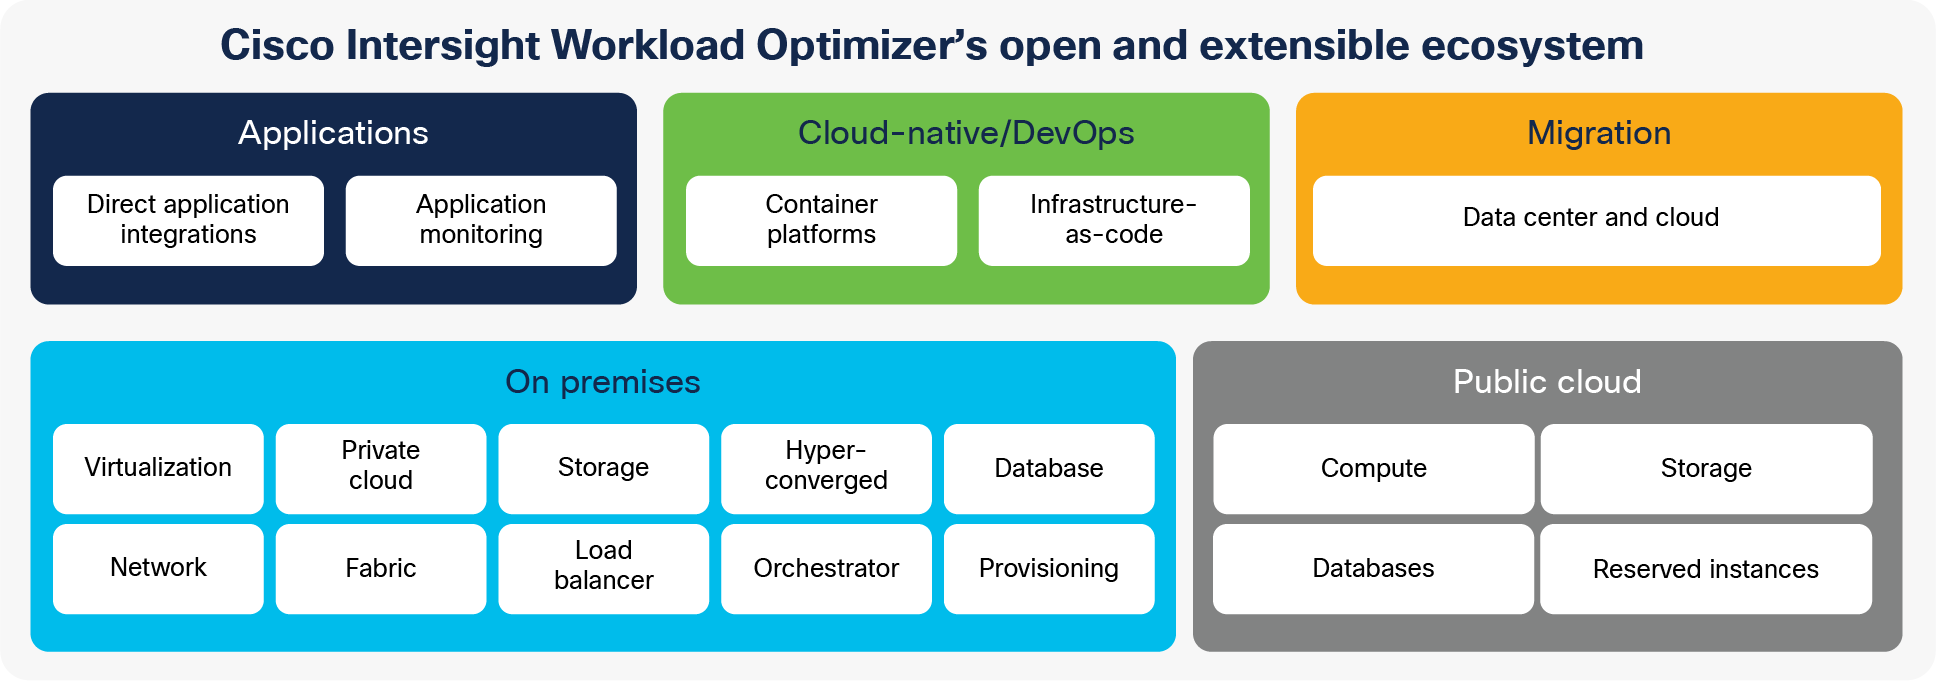 Cisco Intersight Workload Optimizer analyzes telemetry data across your hybrid cloud environment to optimize resources and reduce cost